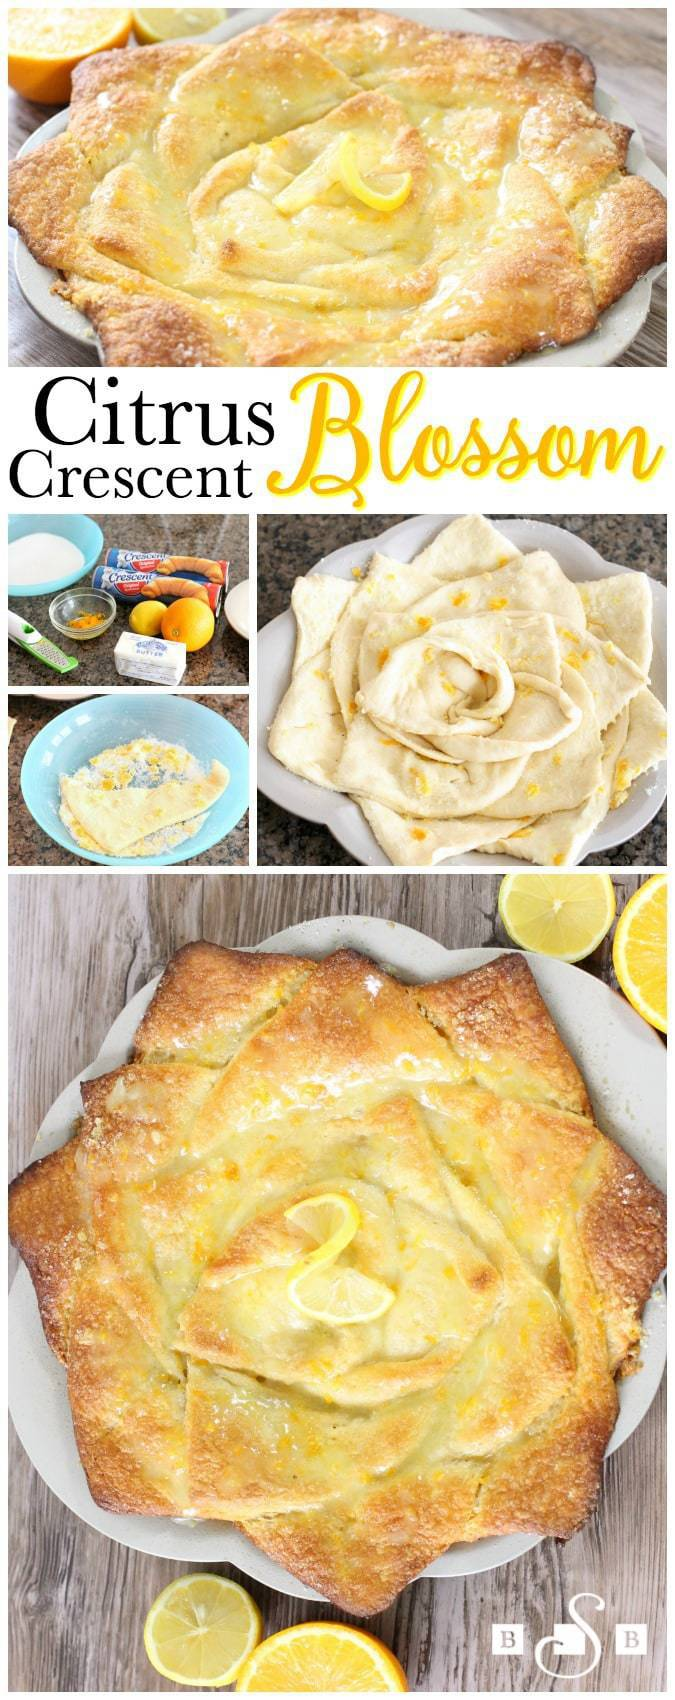 Citrus Crescent Blossom - Butter With A Side of Bread